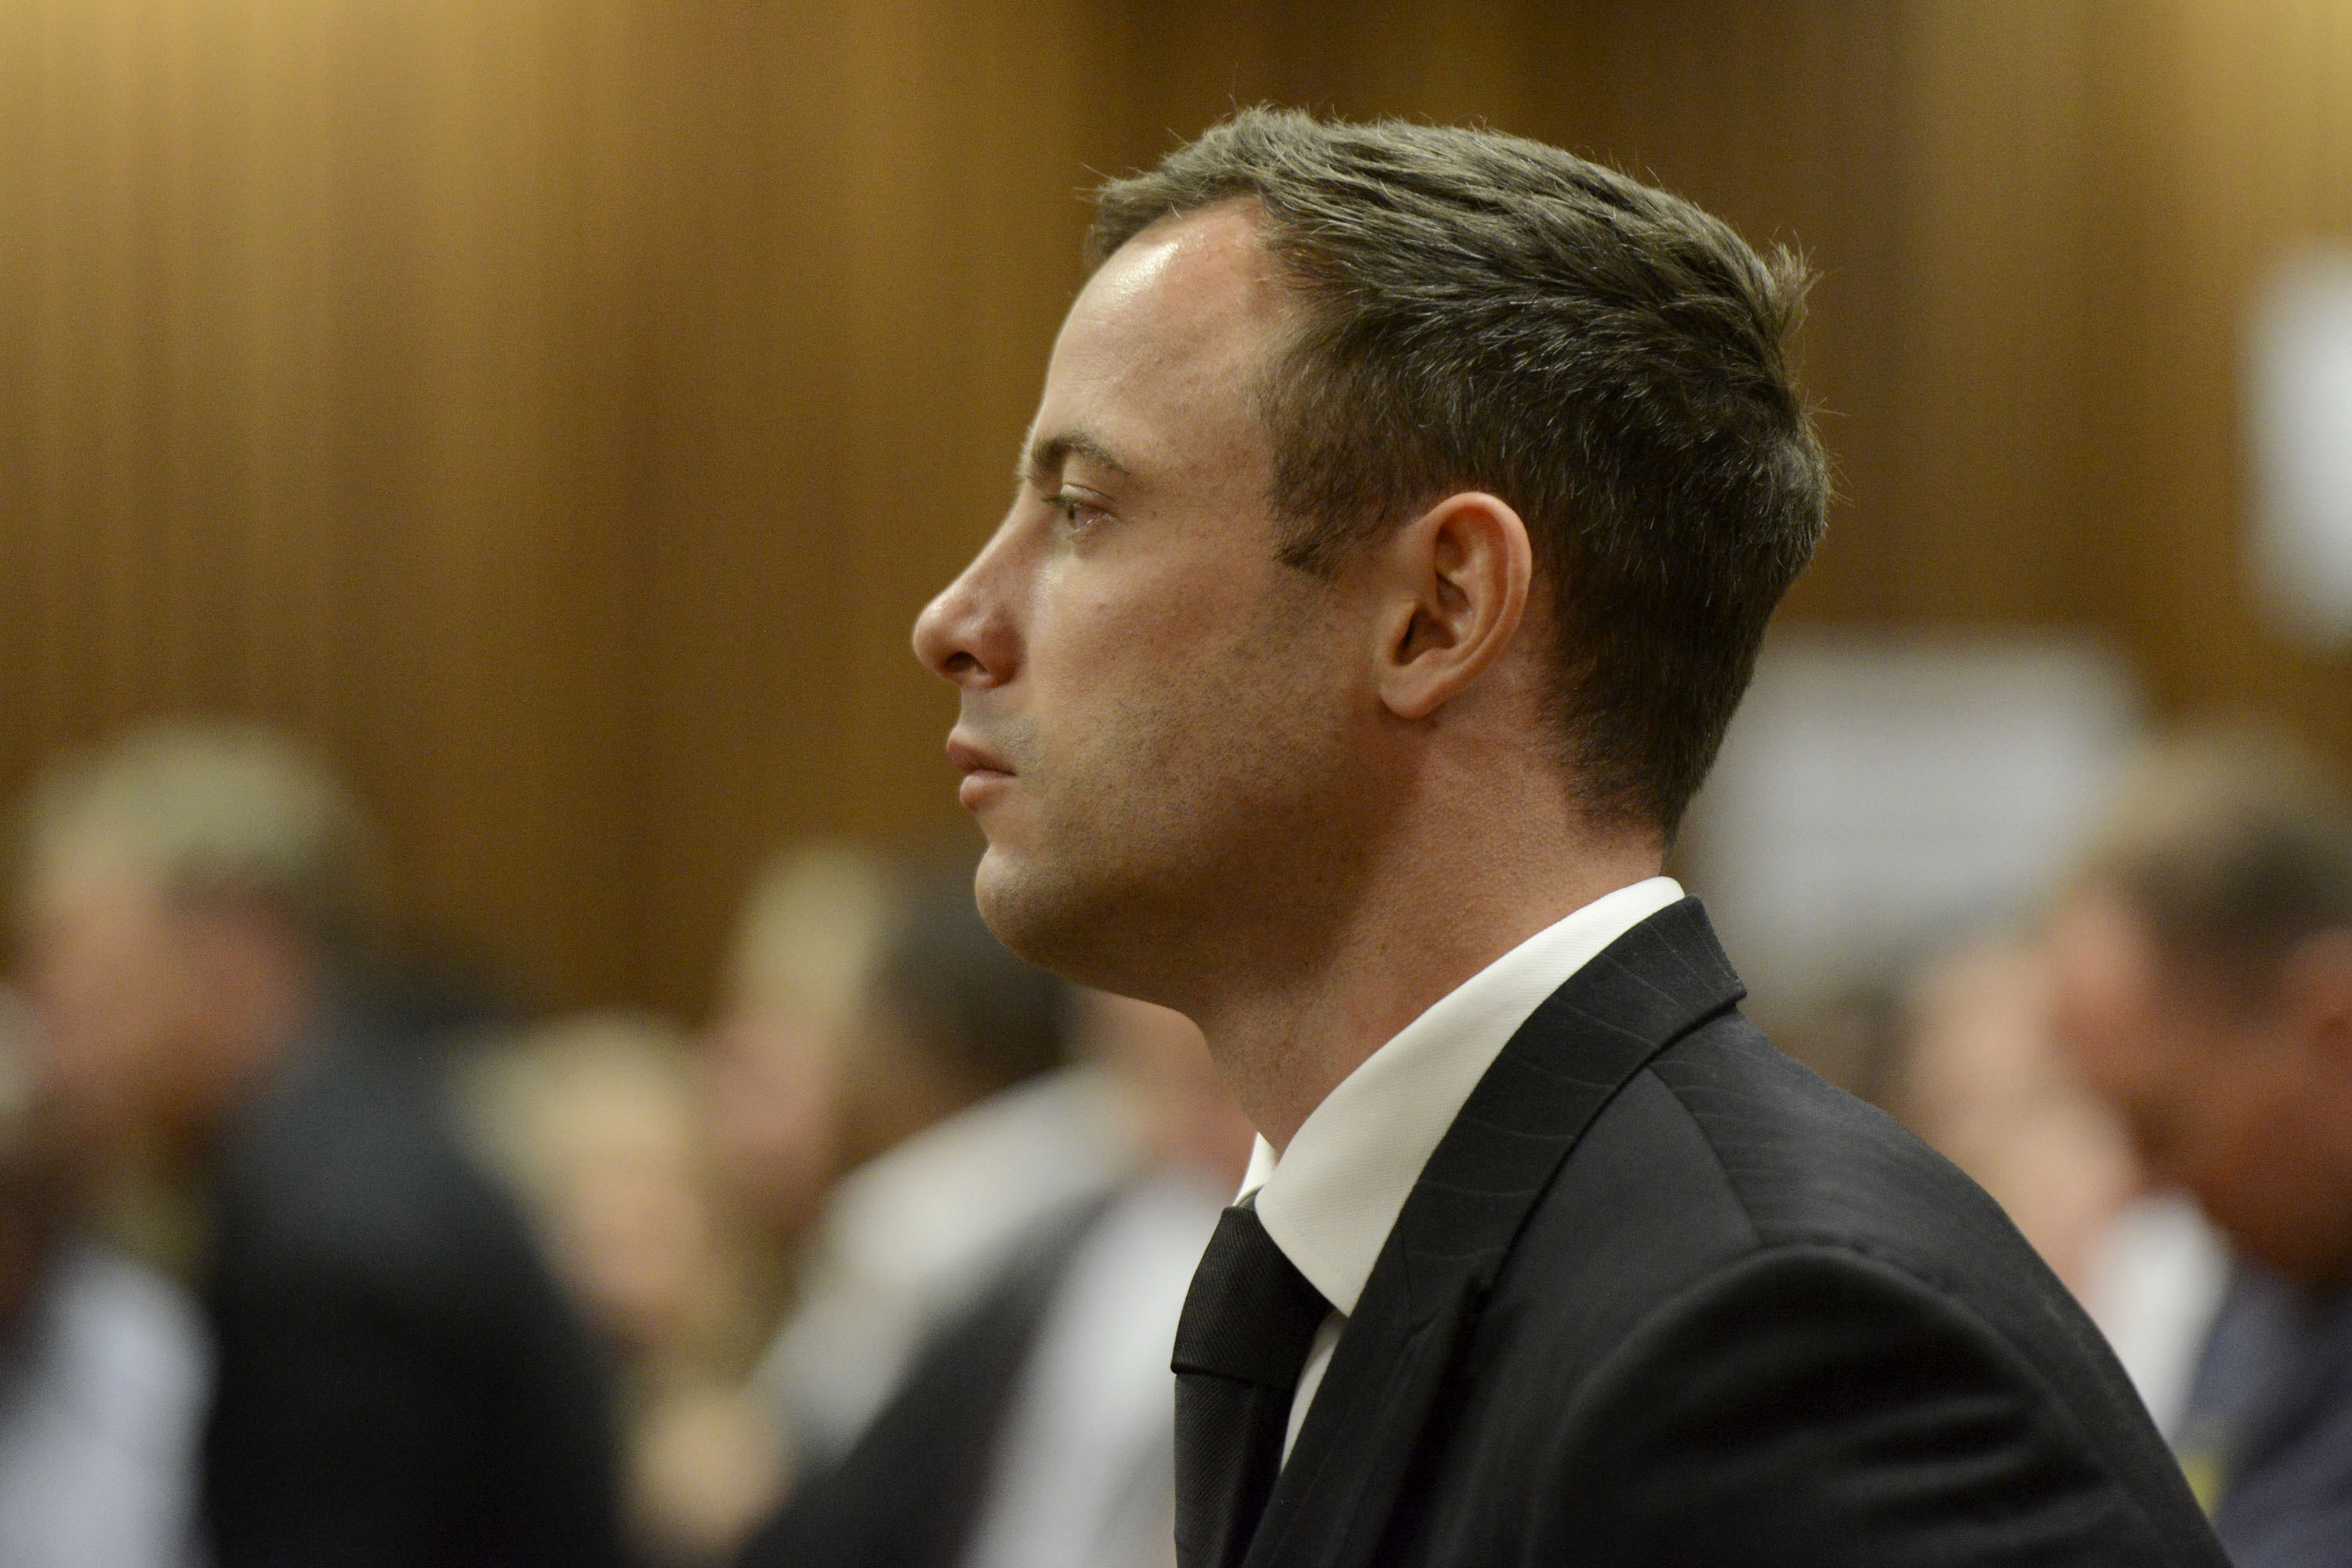 Oscar Pistorius listens to his judgement in the Pretoria High Court on Oct. 21, 2014, in Pretoria, South Africa.